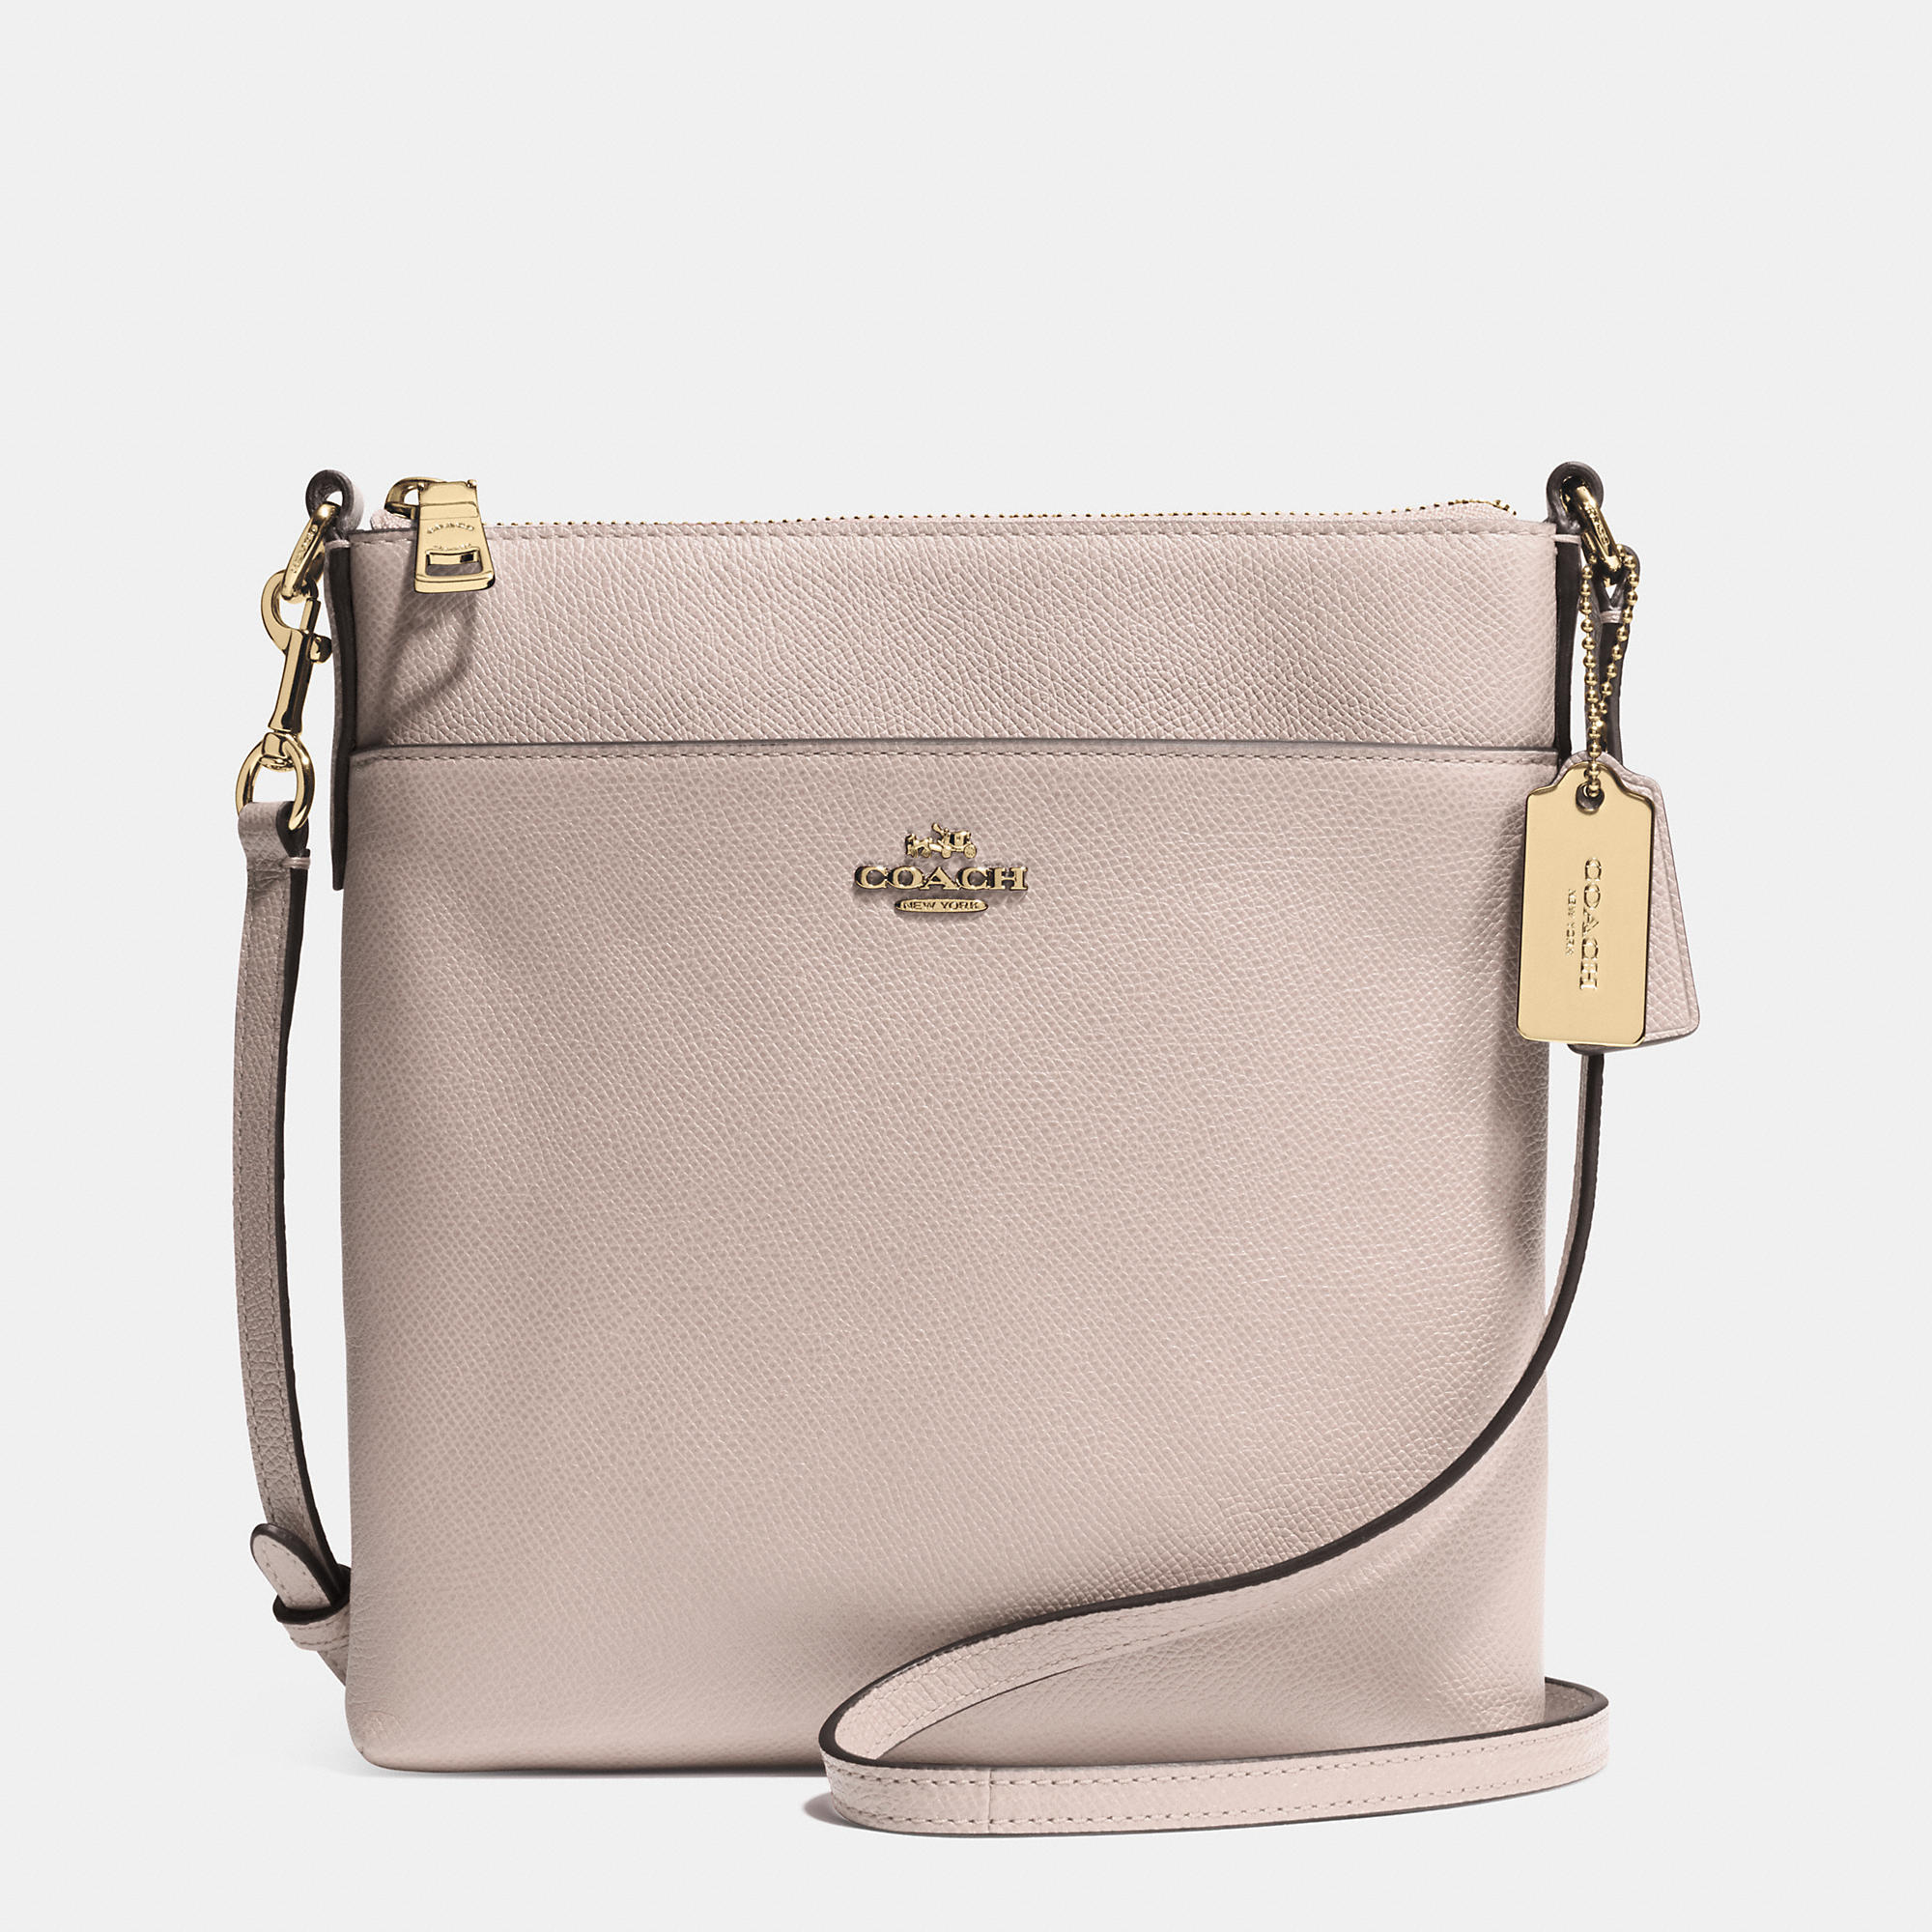 lyst coach north south swingpack in embossed textured leather in rh lyst com